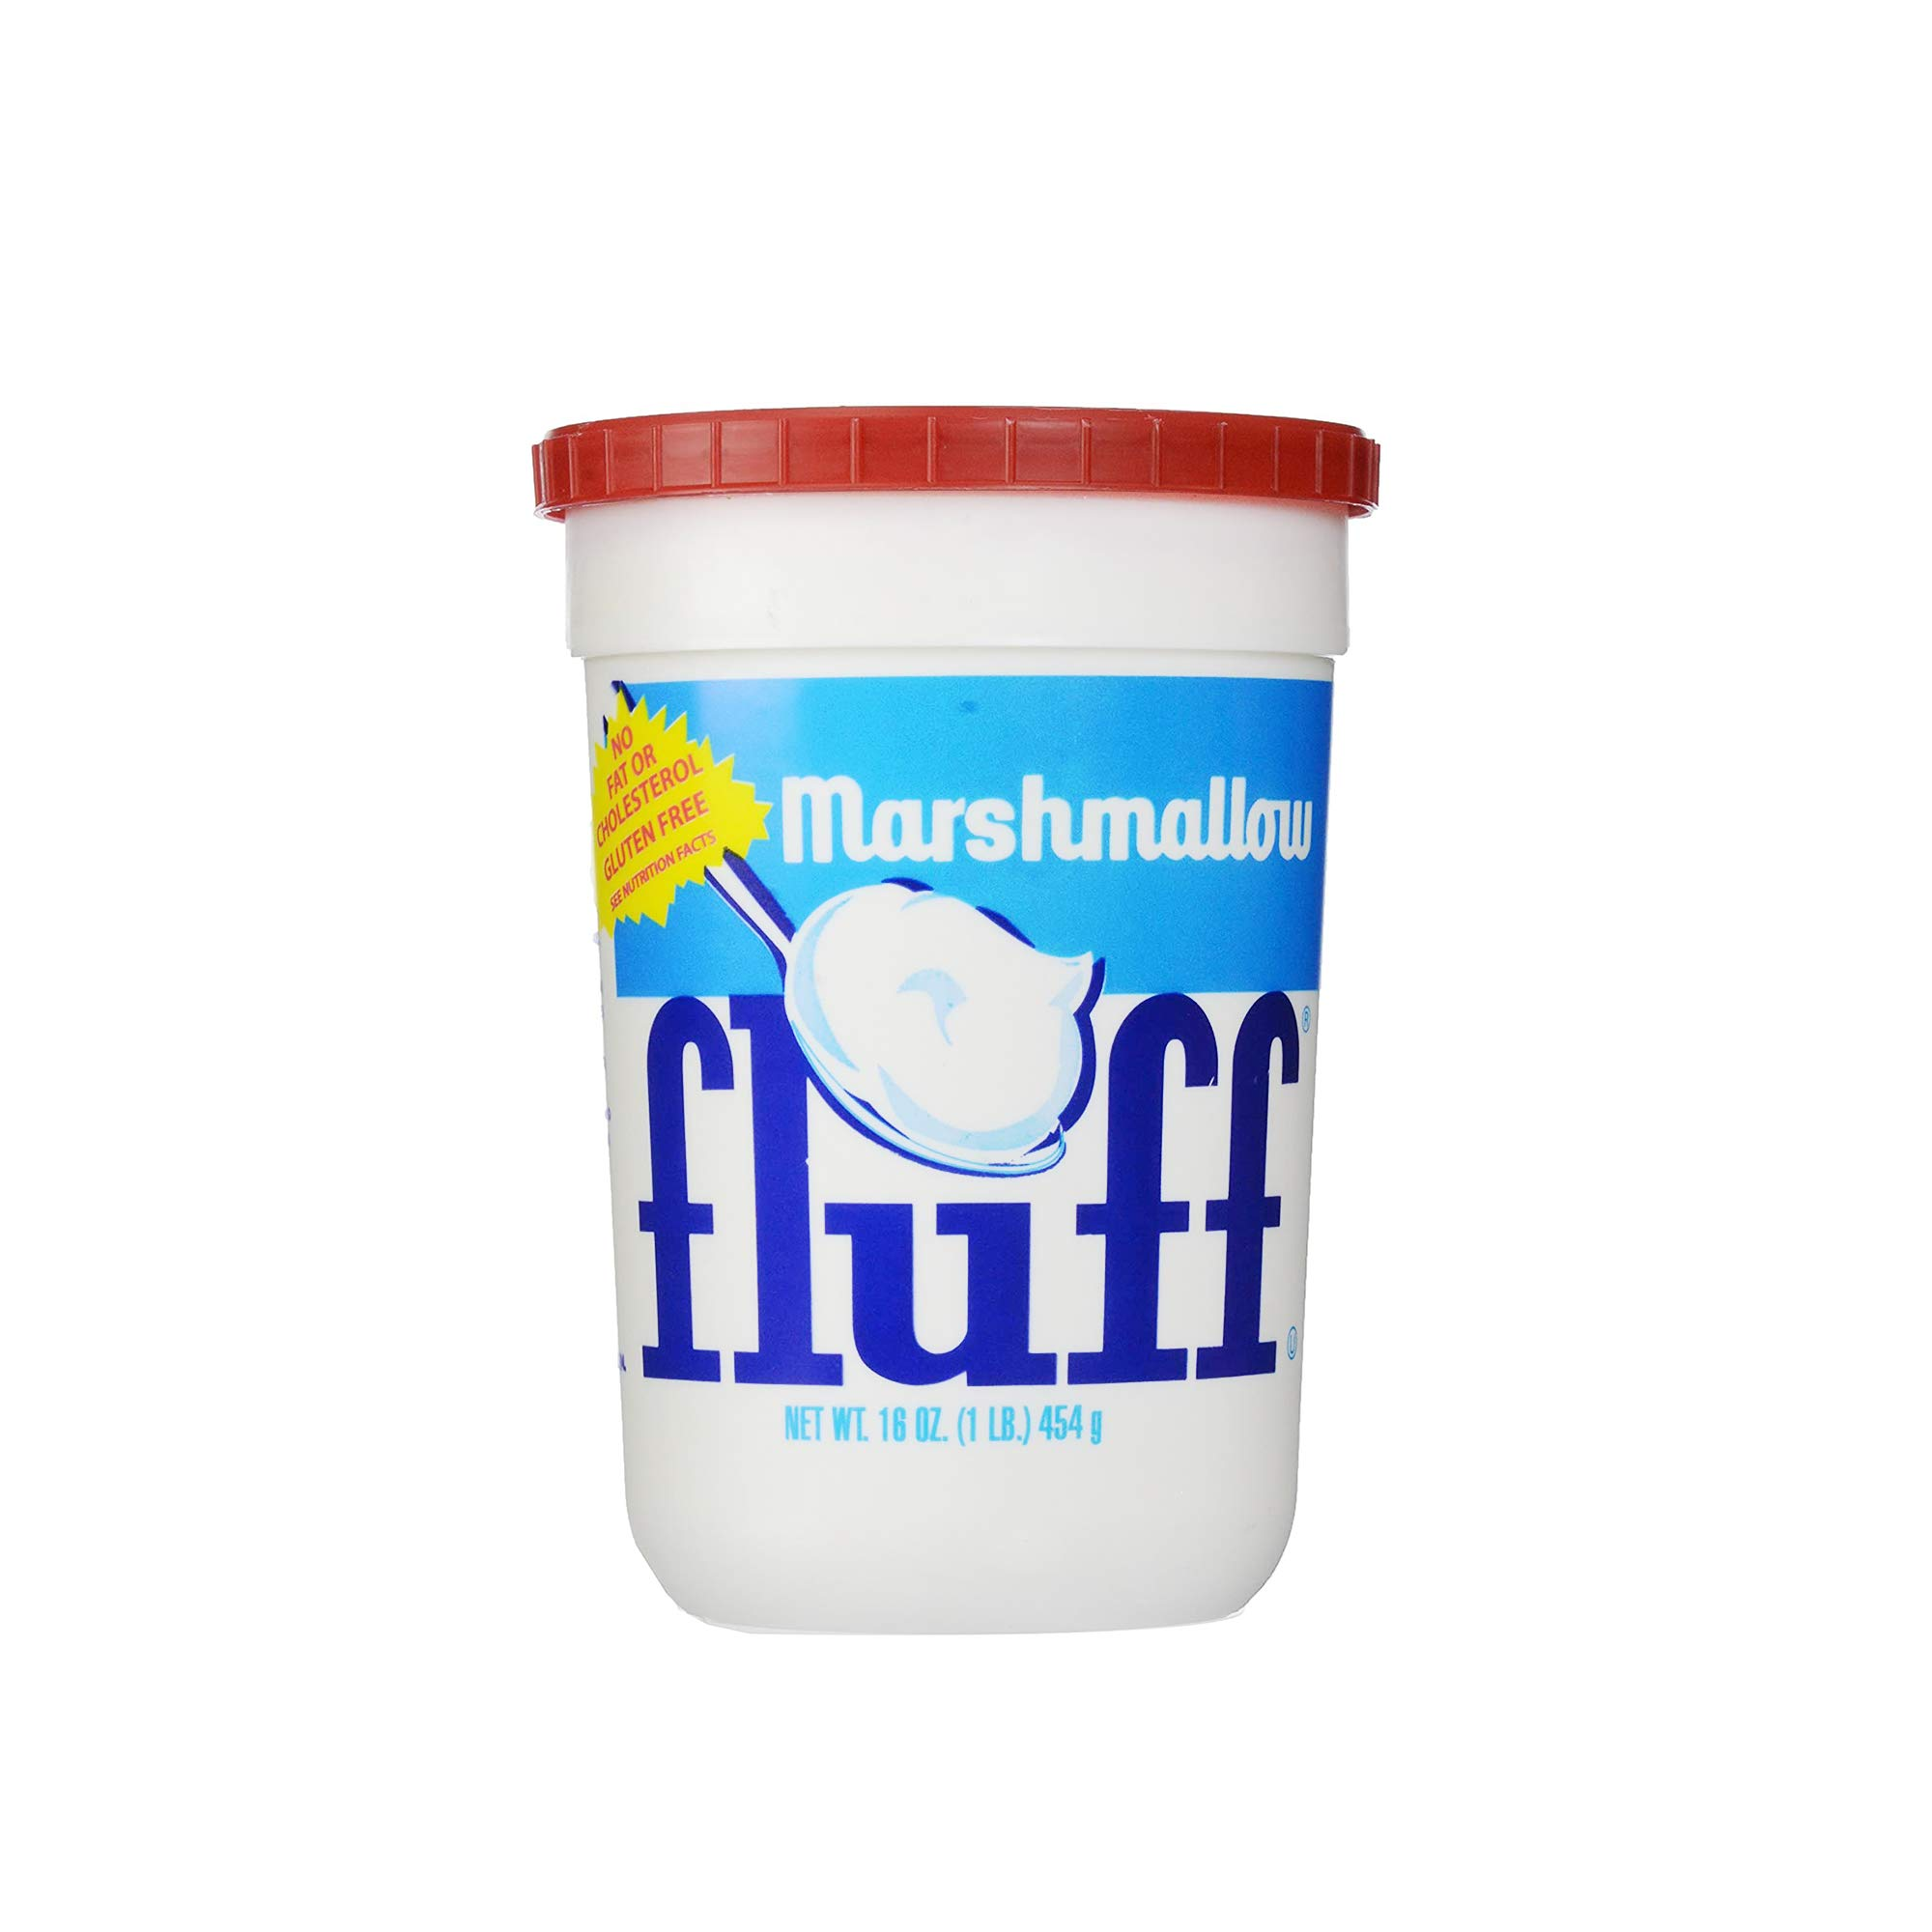 Marshmallow Fluff - Vegetarian Marshmallows - Gluten-Free - Great for Cakes, Smores and as Kids' Treats, 454 g